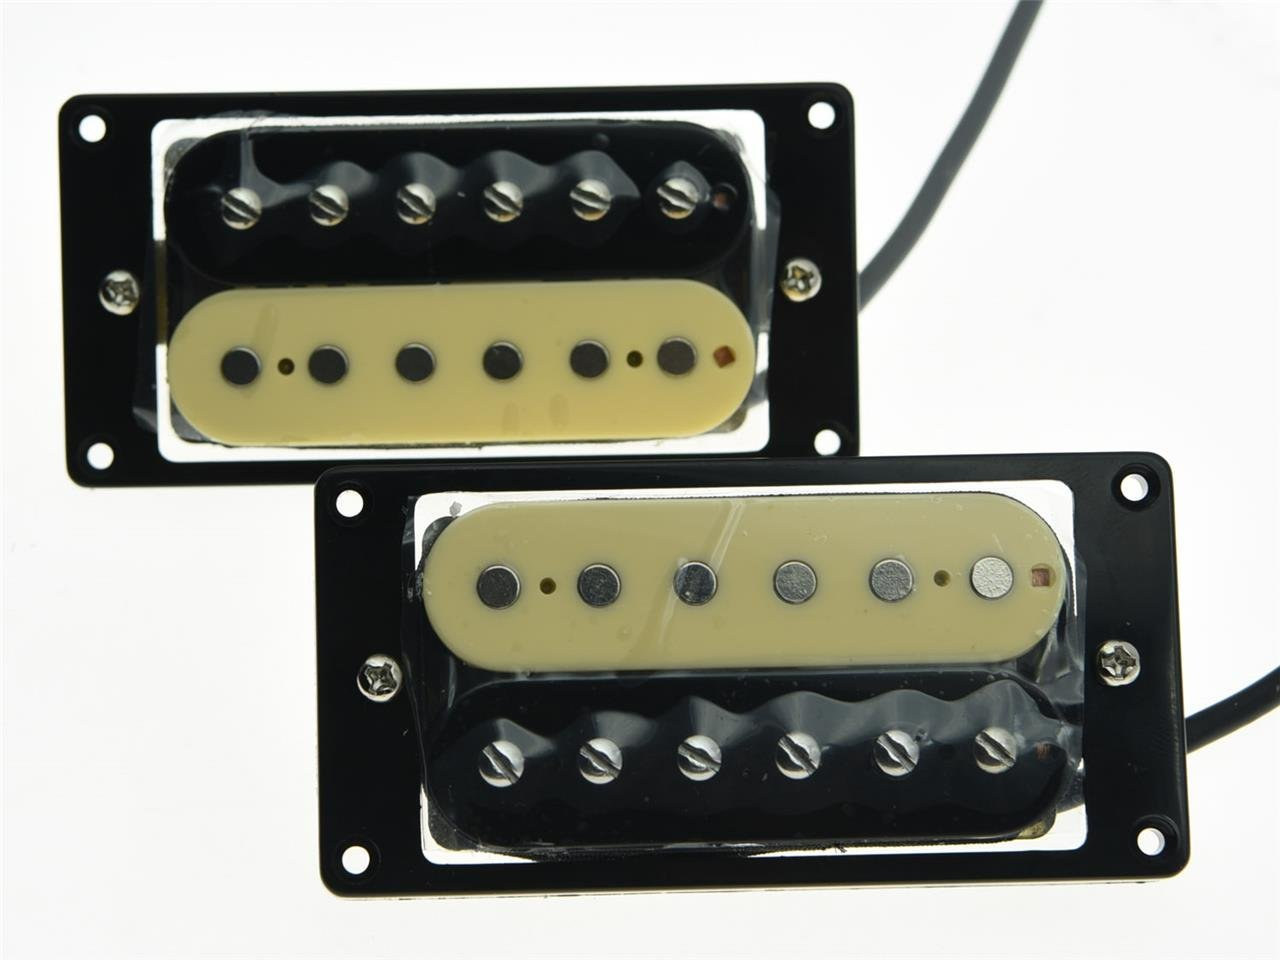 High quality 2x Zebra Alnico V 50's Vintage Sound Humbucker Neck/Bridge Pickup Guitar Pickups belcat electric guitar pickups humbucker alnico 5 humbucking bridge neck chrome double coil pickup guitar parts accessories